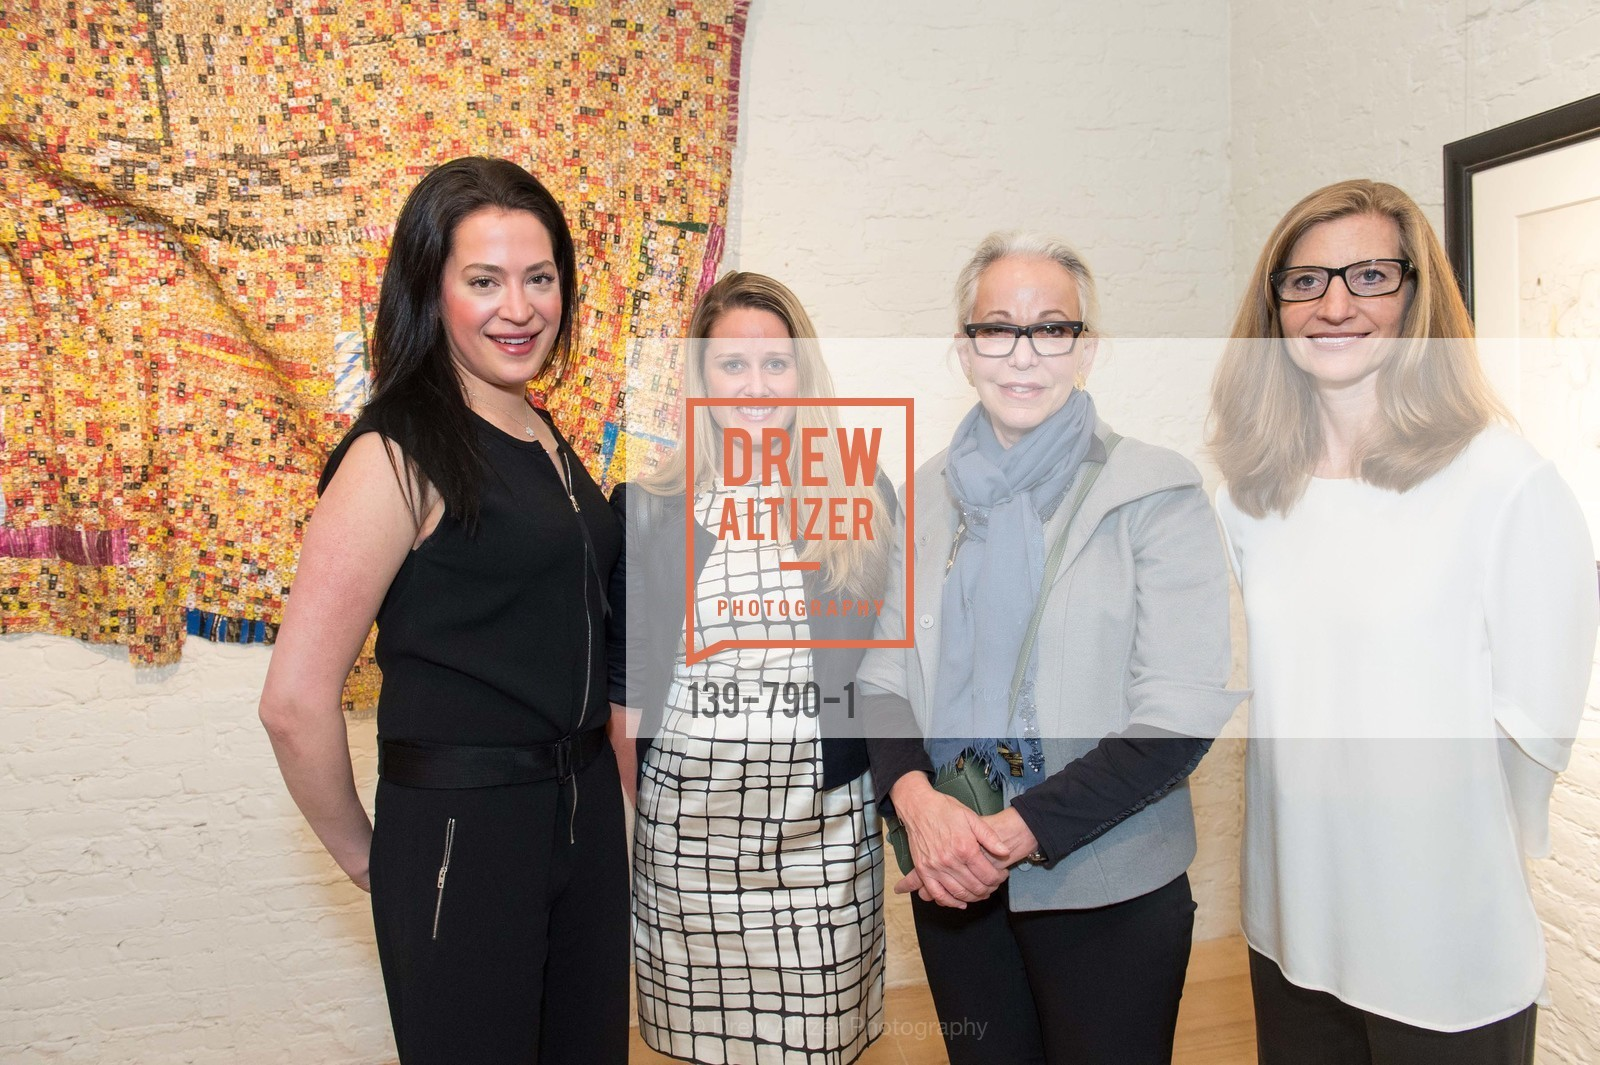 Becky Ascher, Lindsey Snyder, Nancy Ascher, Laura Nagle, Post War and Contemporary Preview at HEDGE GALLERY, US, April 15th, 2015,Drew Altizer, Drew Altizer Photography, full-service agency, private events, San Francisco photographer, photographer california